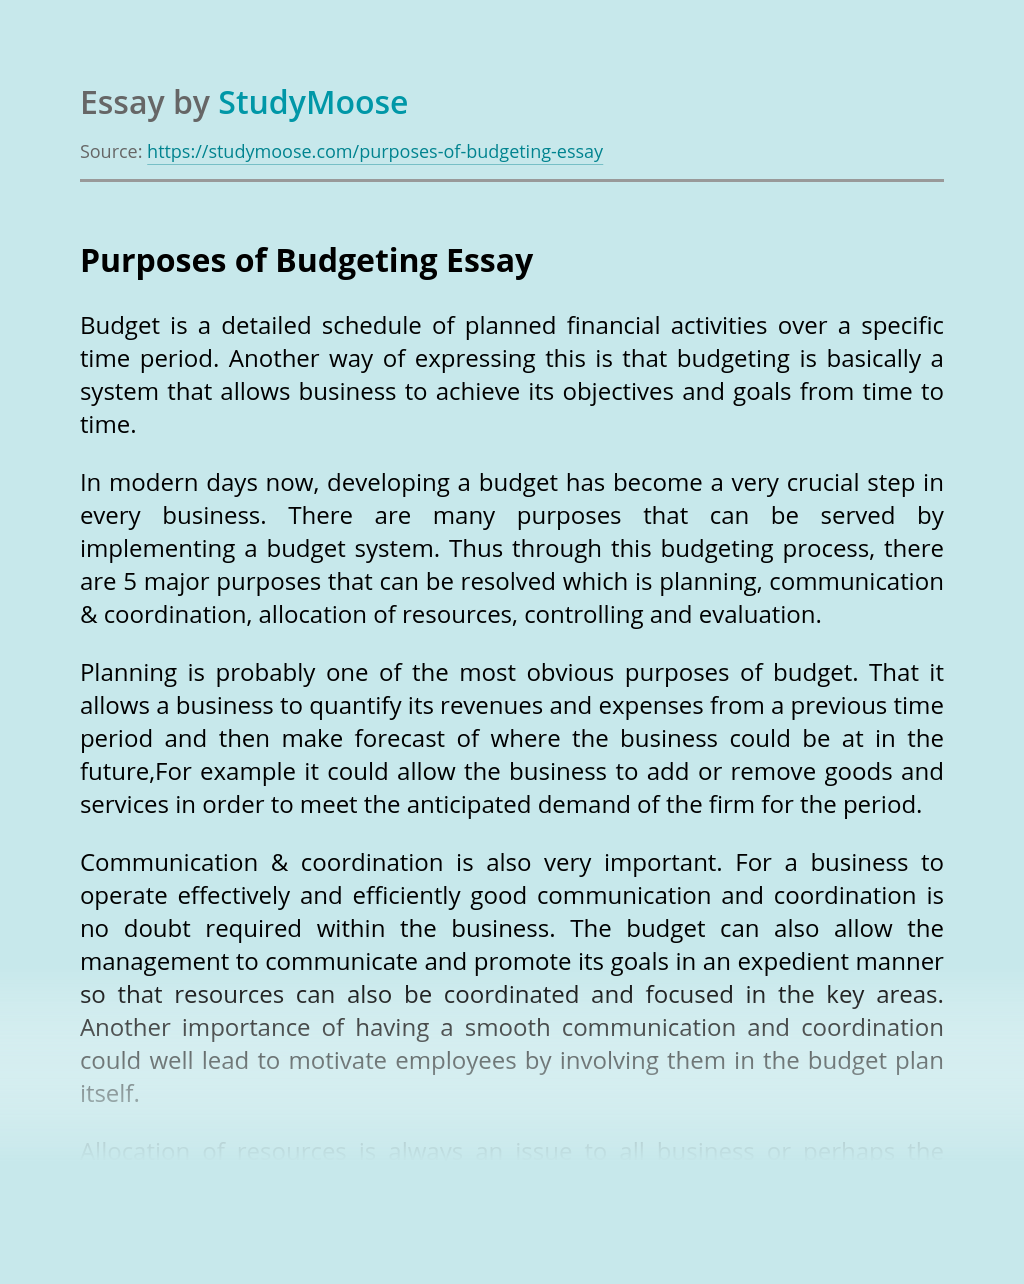 Purposes of Budgeting